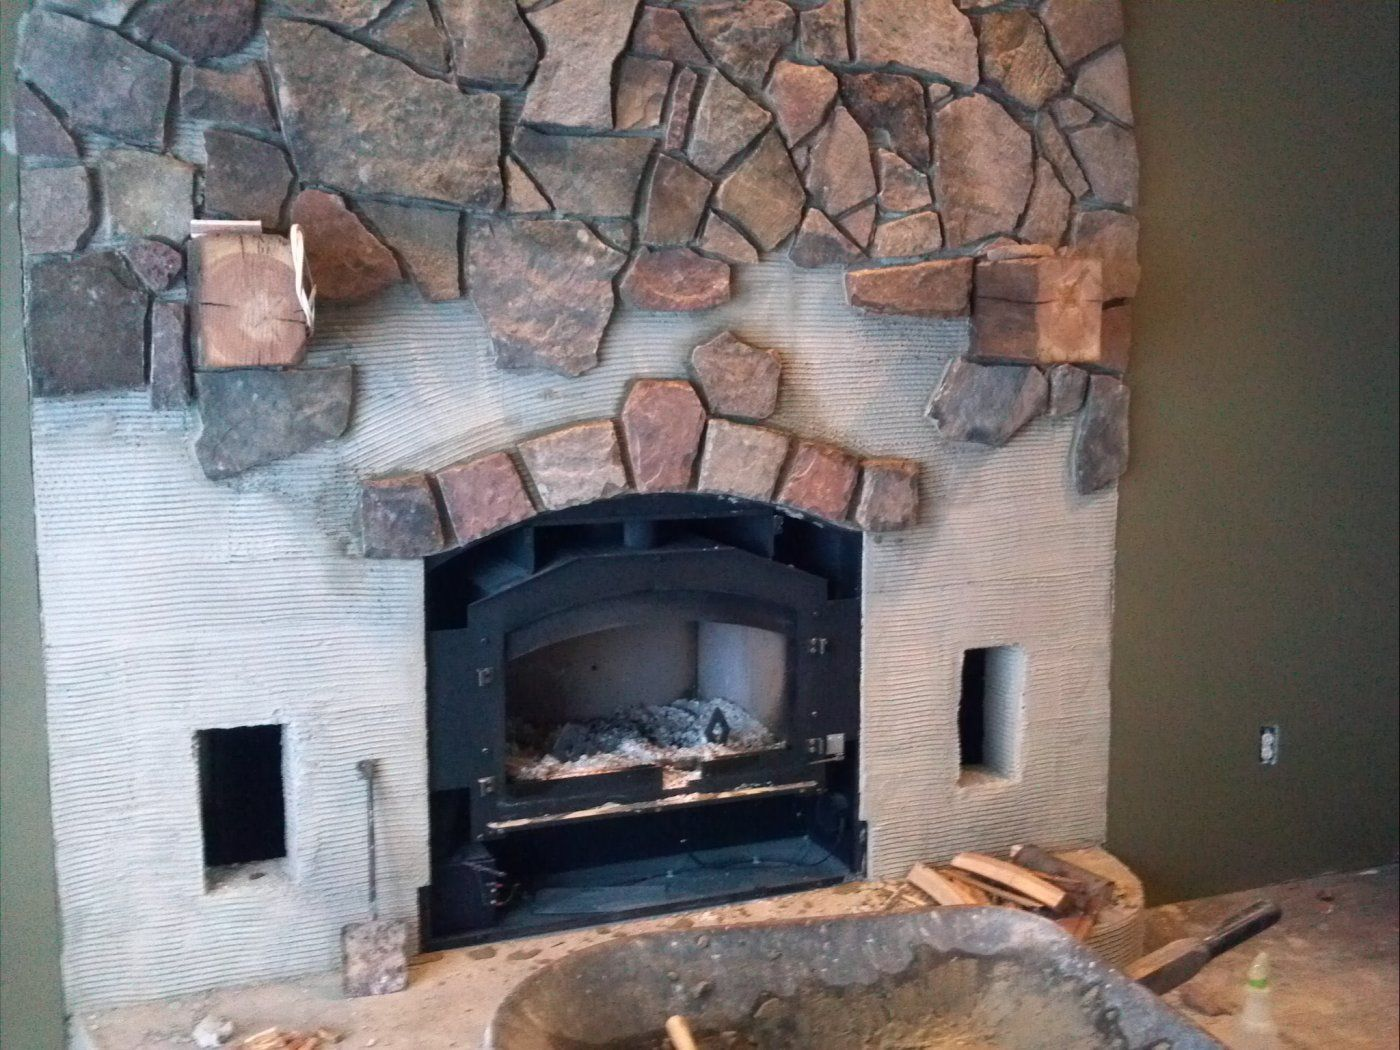 how to beautify an ugly surround hearth com forums home